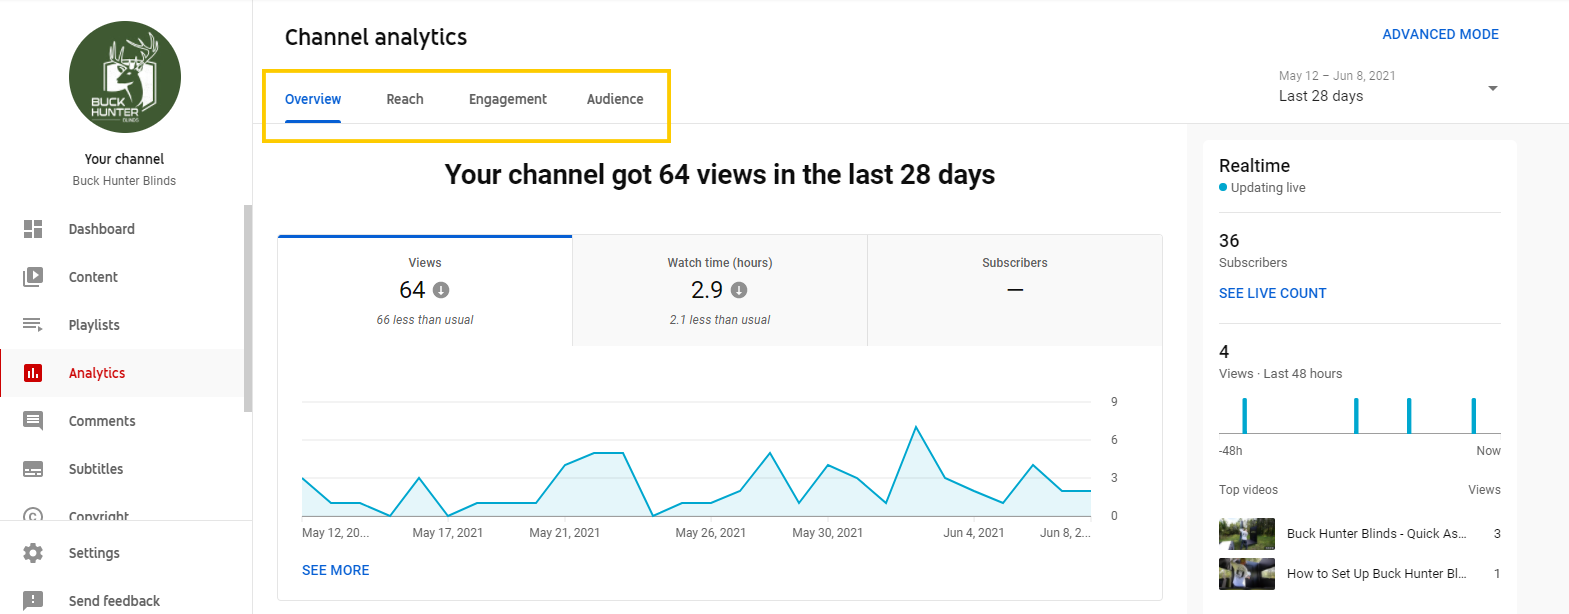 Image example of available metrics to check in Google Analytics